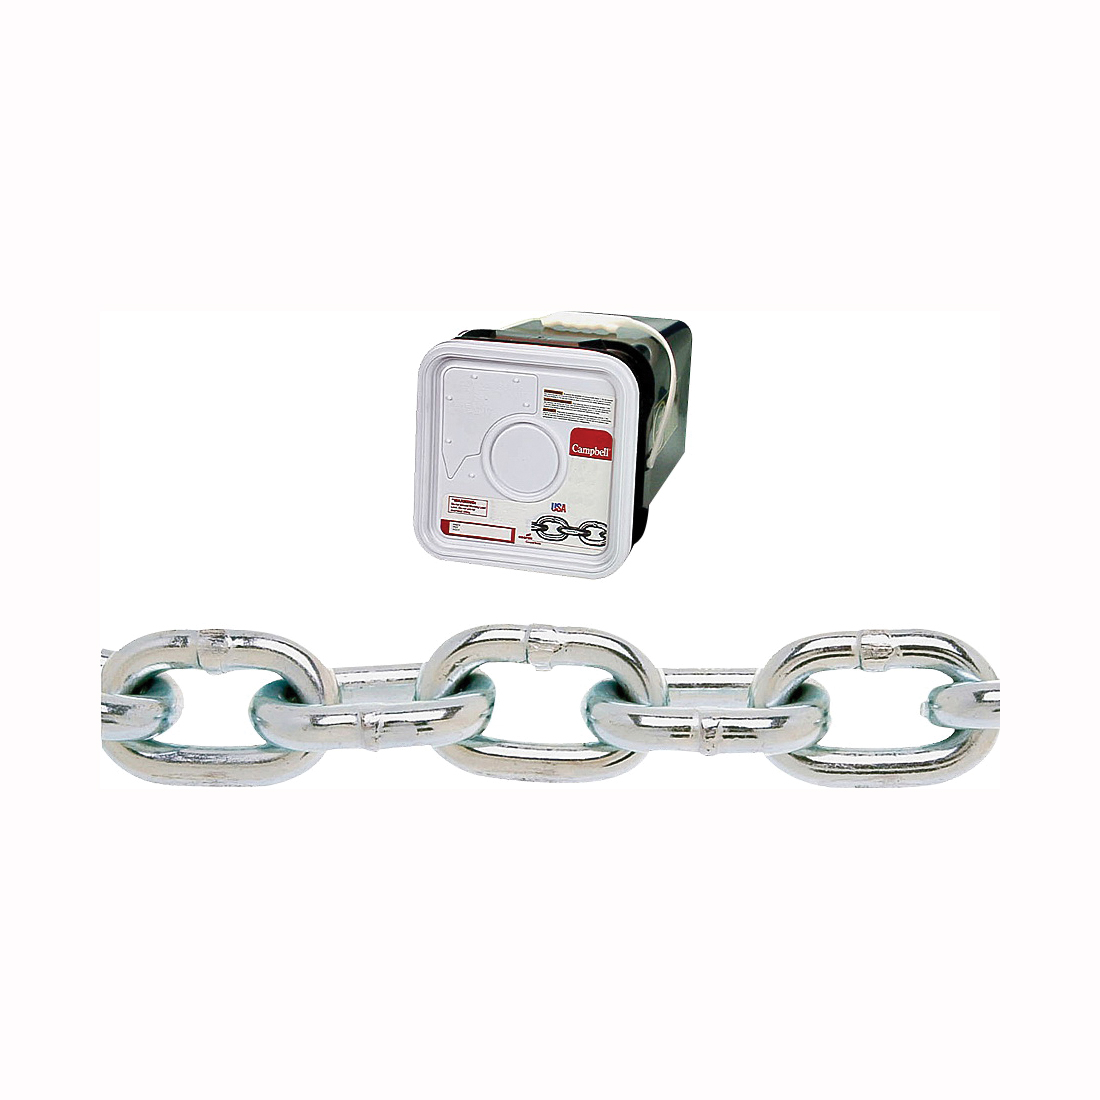 Picture of Campbell 014-3626 Proof Coil Chain, 3/8 in Trade, 45 ft L, 30 Grade, Steel, Zinc, Square Pail